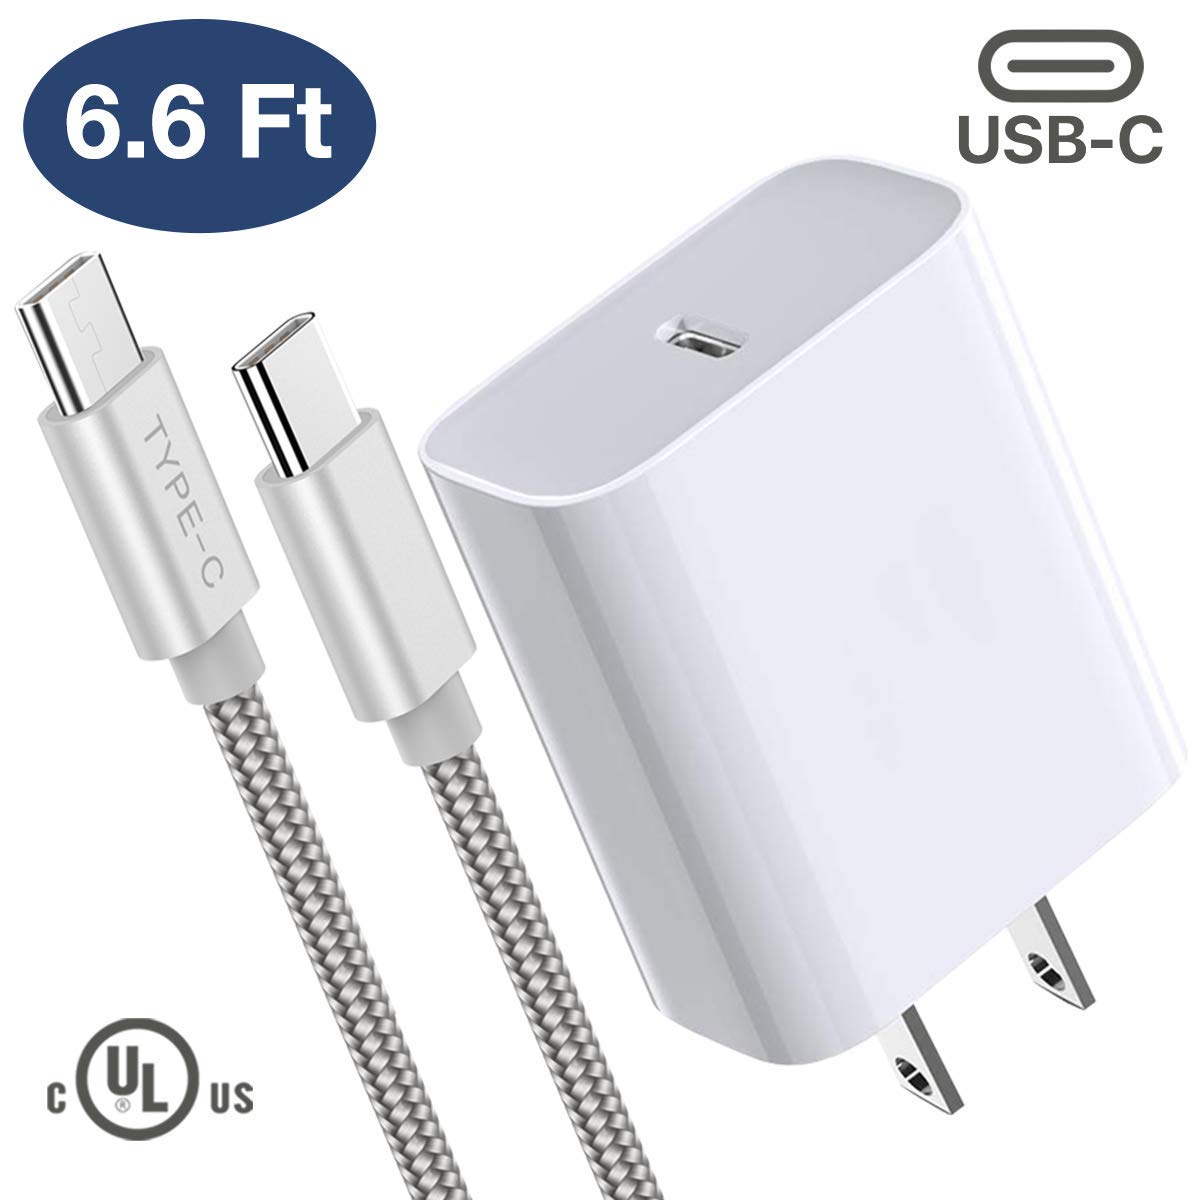 USB-C Fast Power Adapter Boxgear -for Latest iPad Pro (3rd Generation 11-inch and 12.9-Inch) 18W PD Quick Wall Charger with 6.6 Feet Braided USB-C Cable for Google Pixel 3, Note 10, Galaxy S10, White by Boxgear